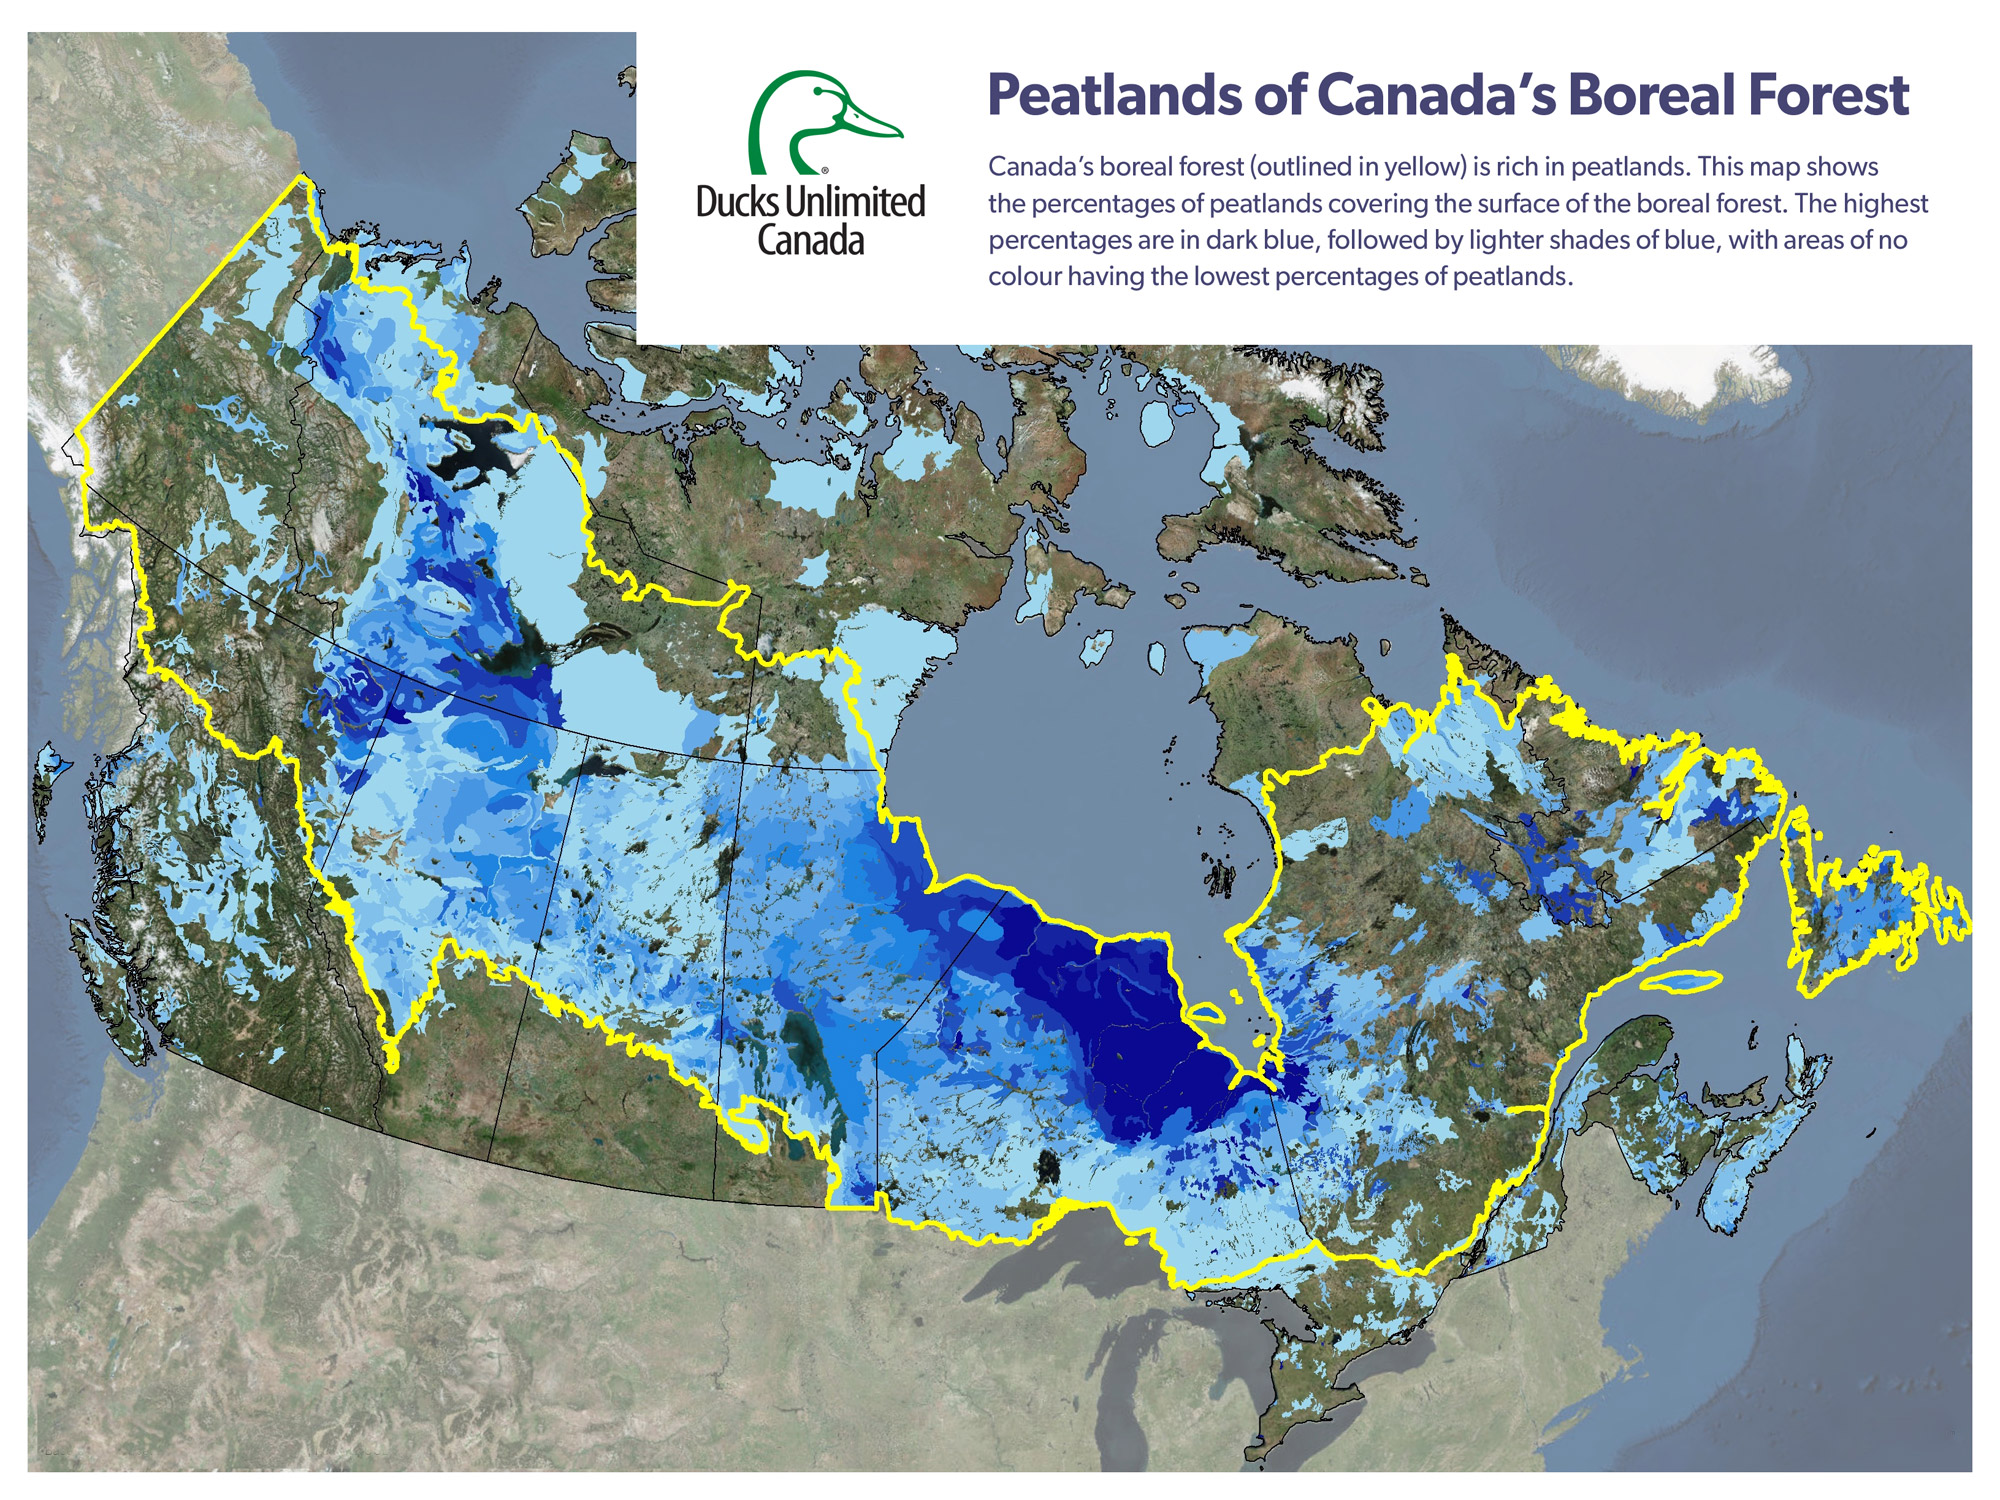 Canada's Peatlands: One of the World's Largest Carbon Sinks